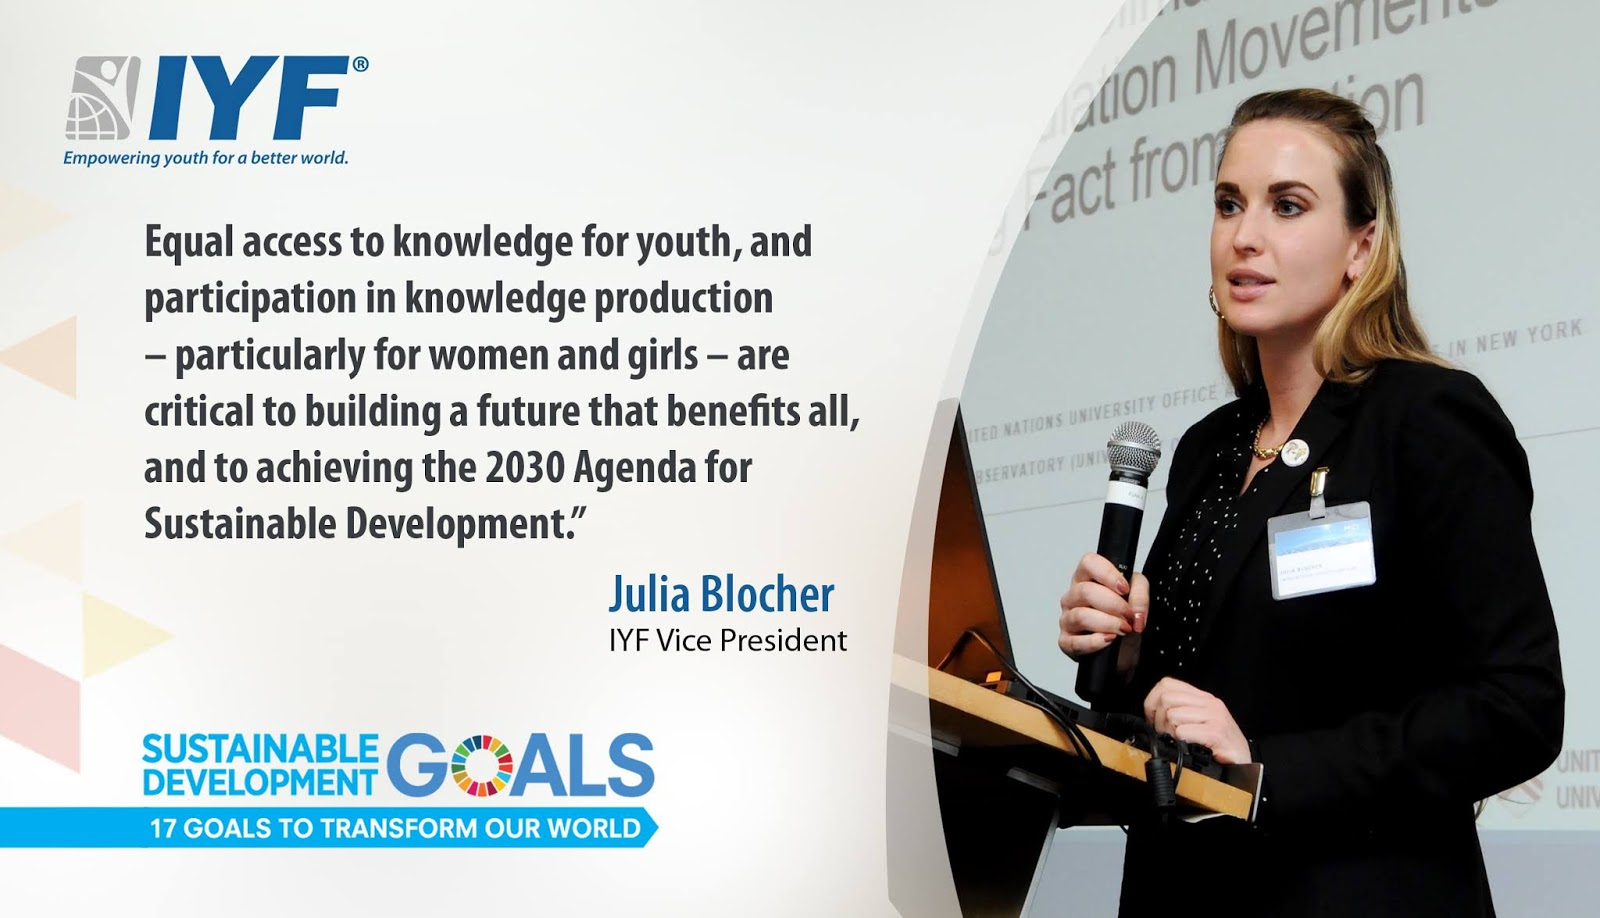 Julia Blocher, IYF Vice President